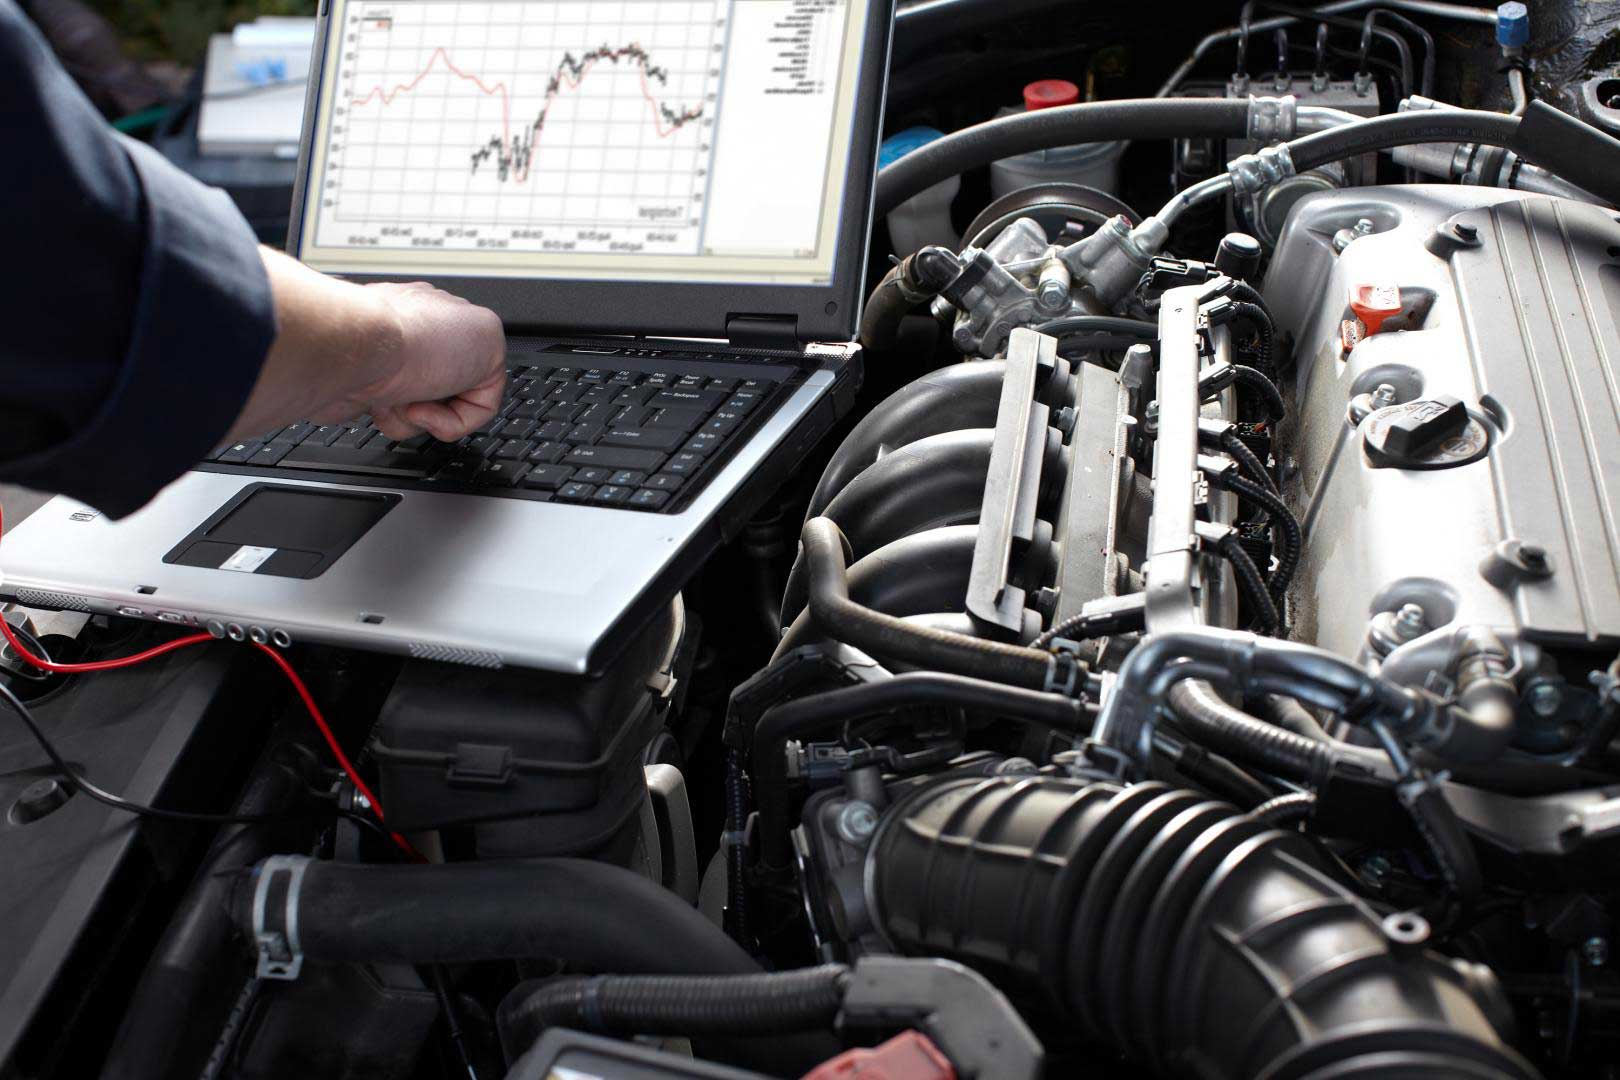 6 Effective Ways To Troubleshoot Your Car's Electrical Problems